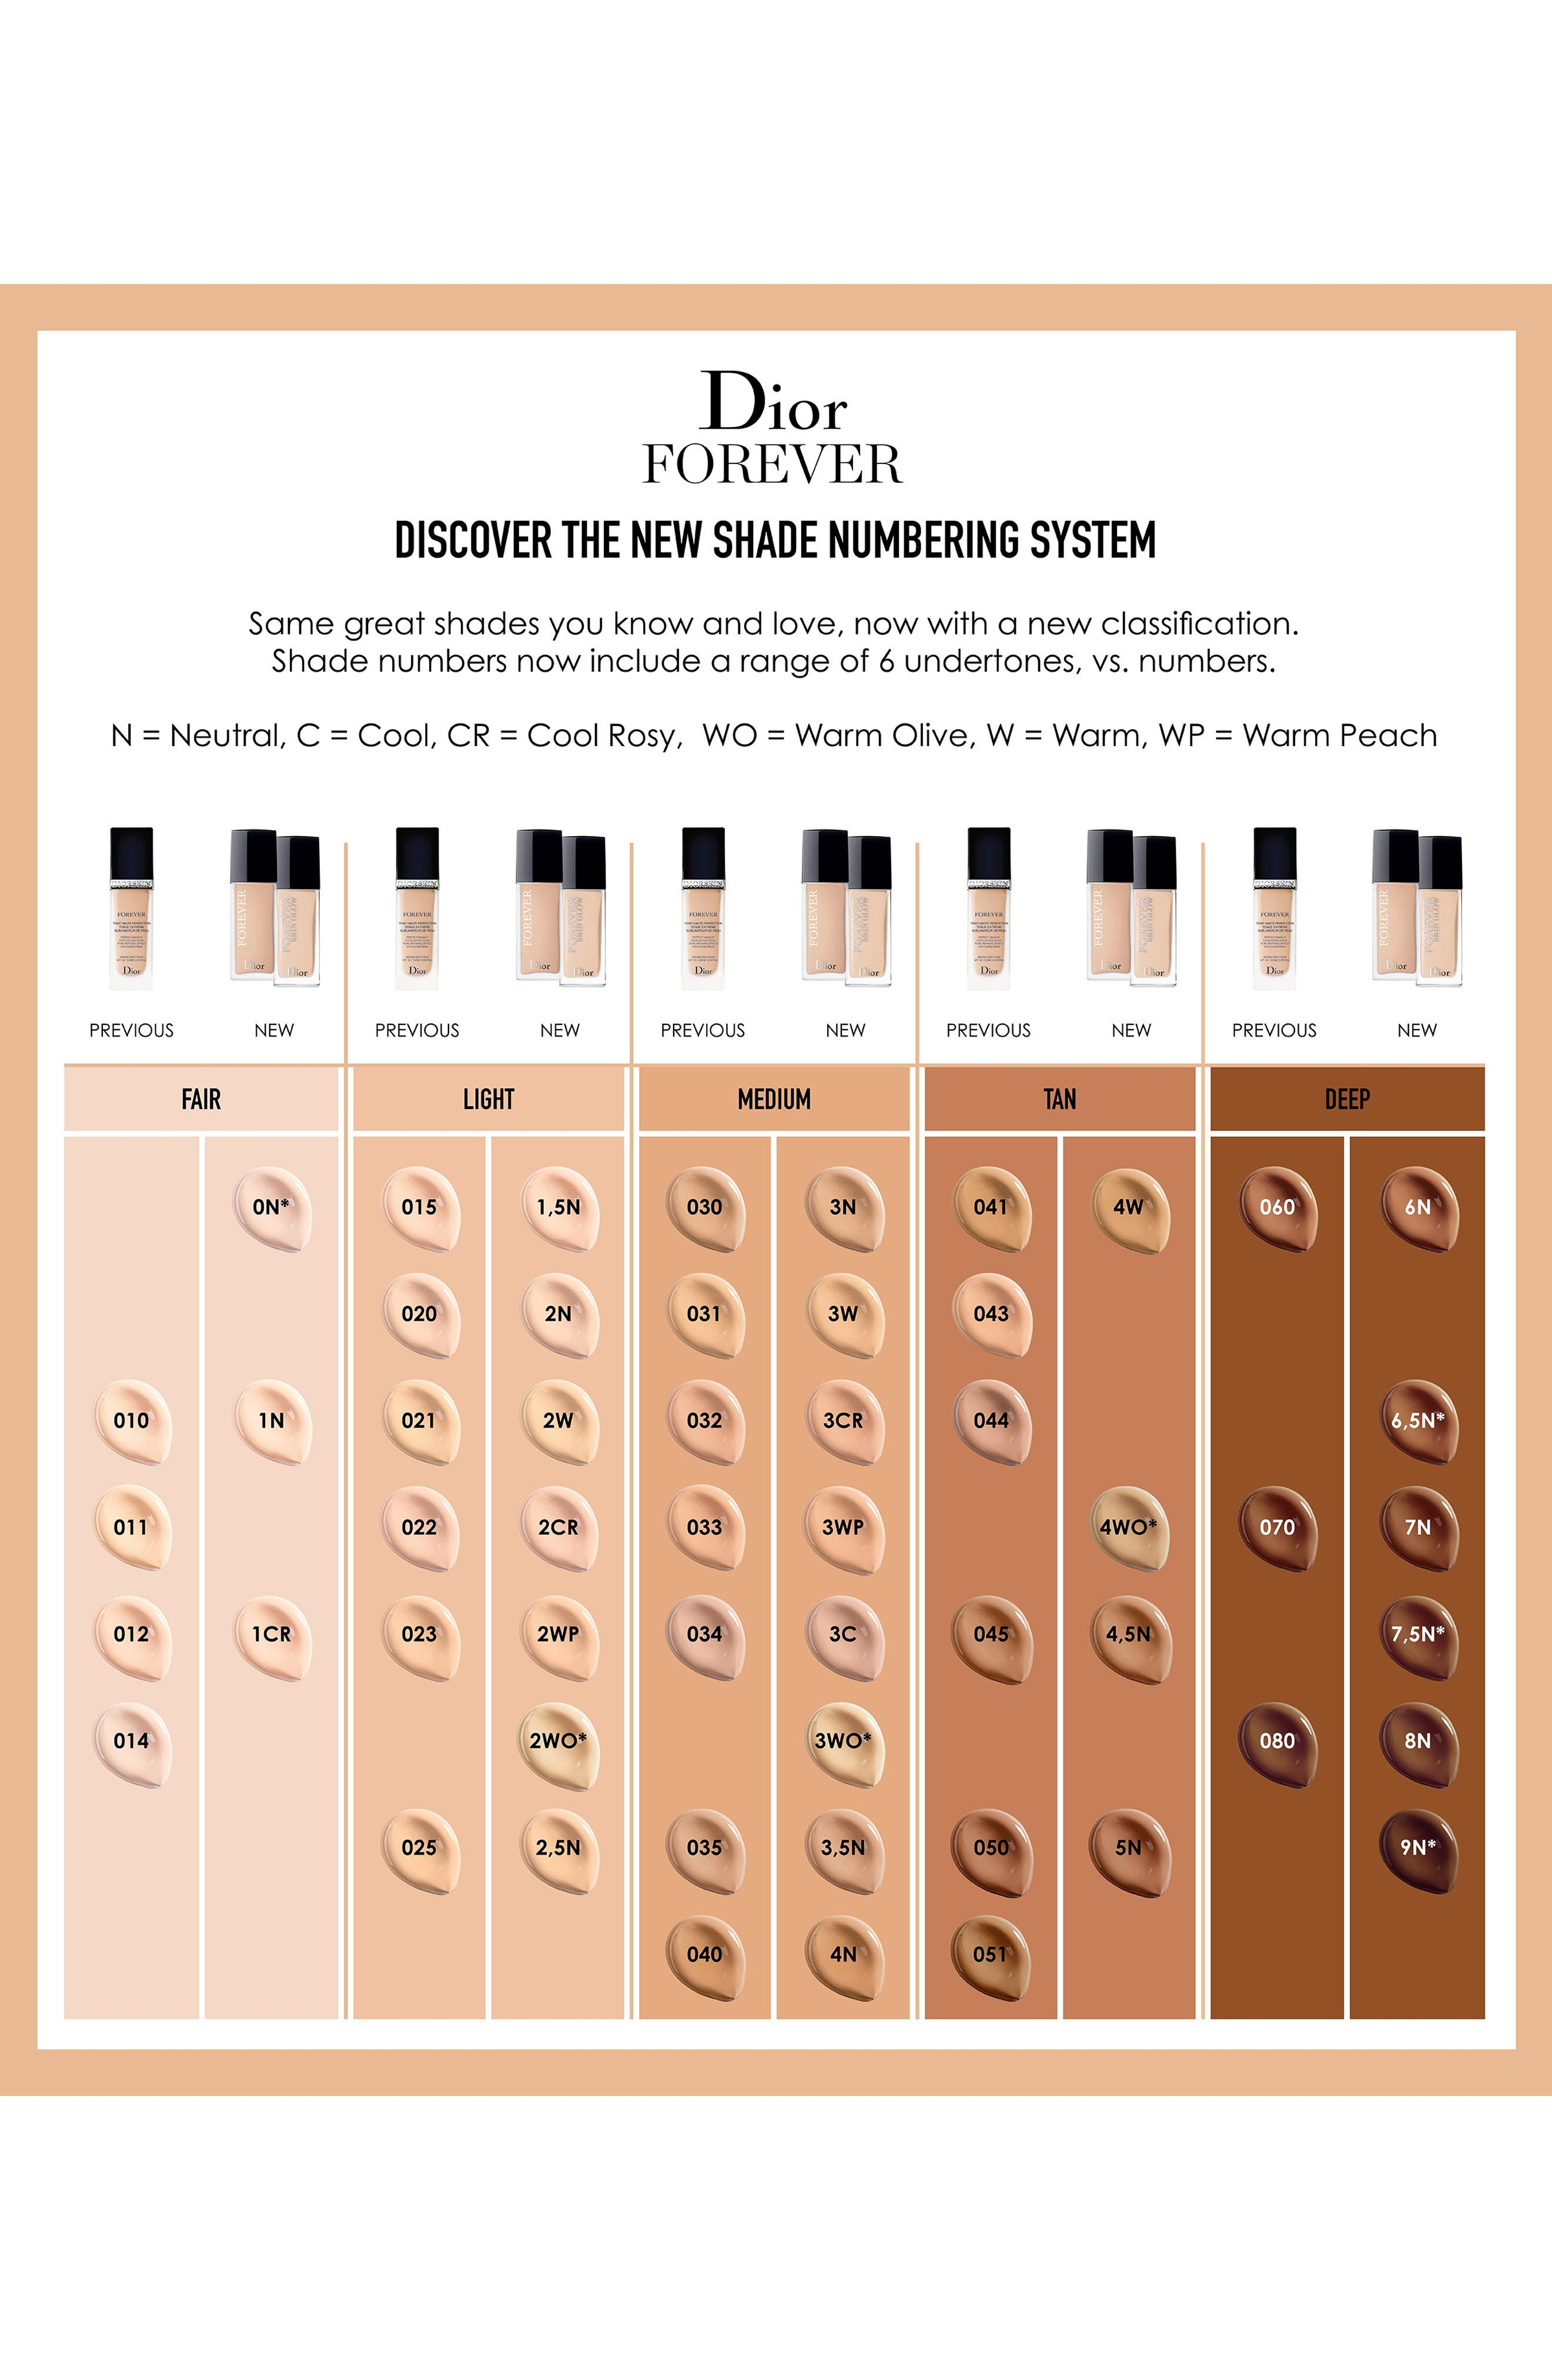 Forever Skin Glow Radiant Perfection Skin-Caring Foundation SPF 35,                             Alternate thumbnail 4, color,                             1 NEUTRAL